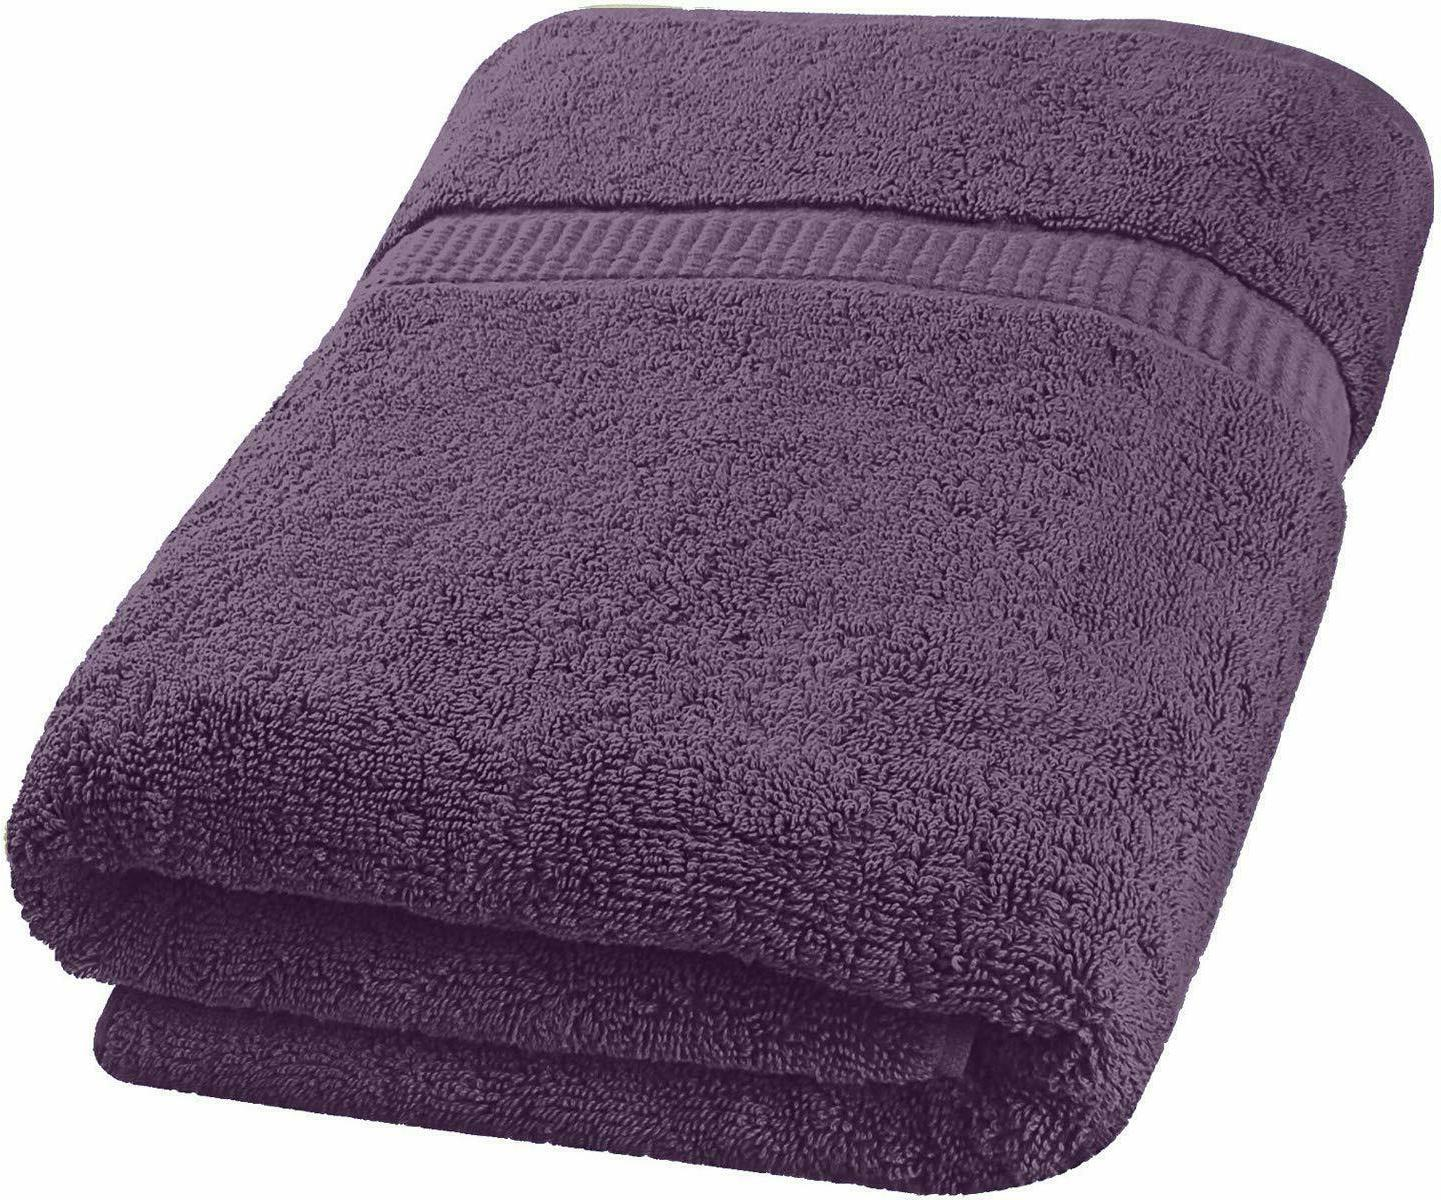 Extra Sheet Towel Soft 35 x 70 Utopia